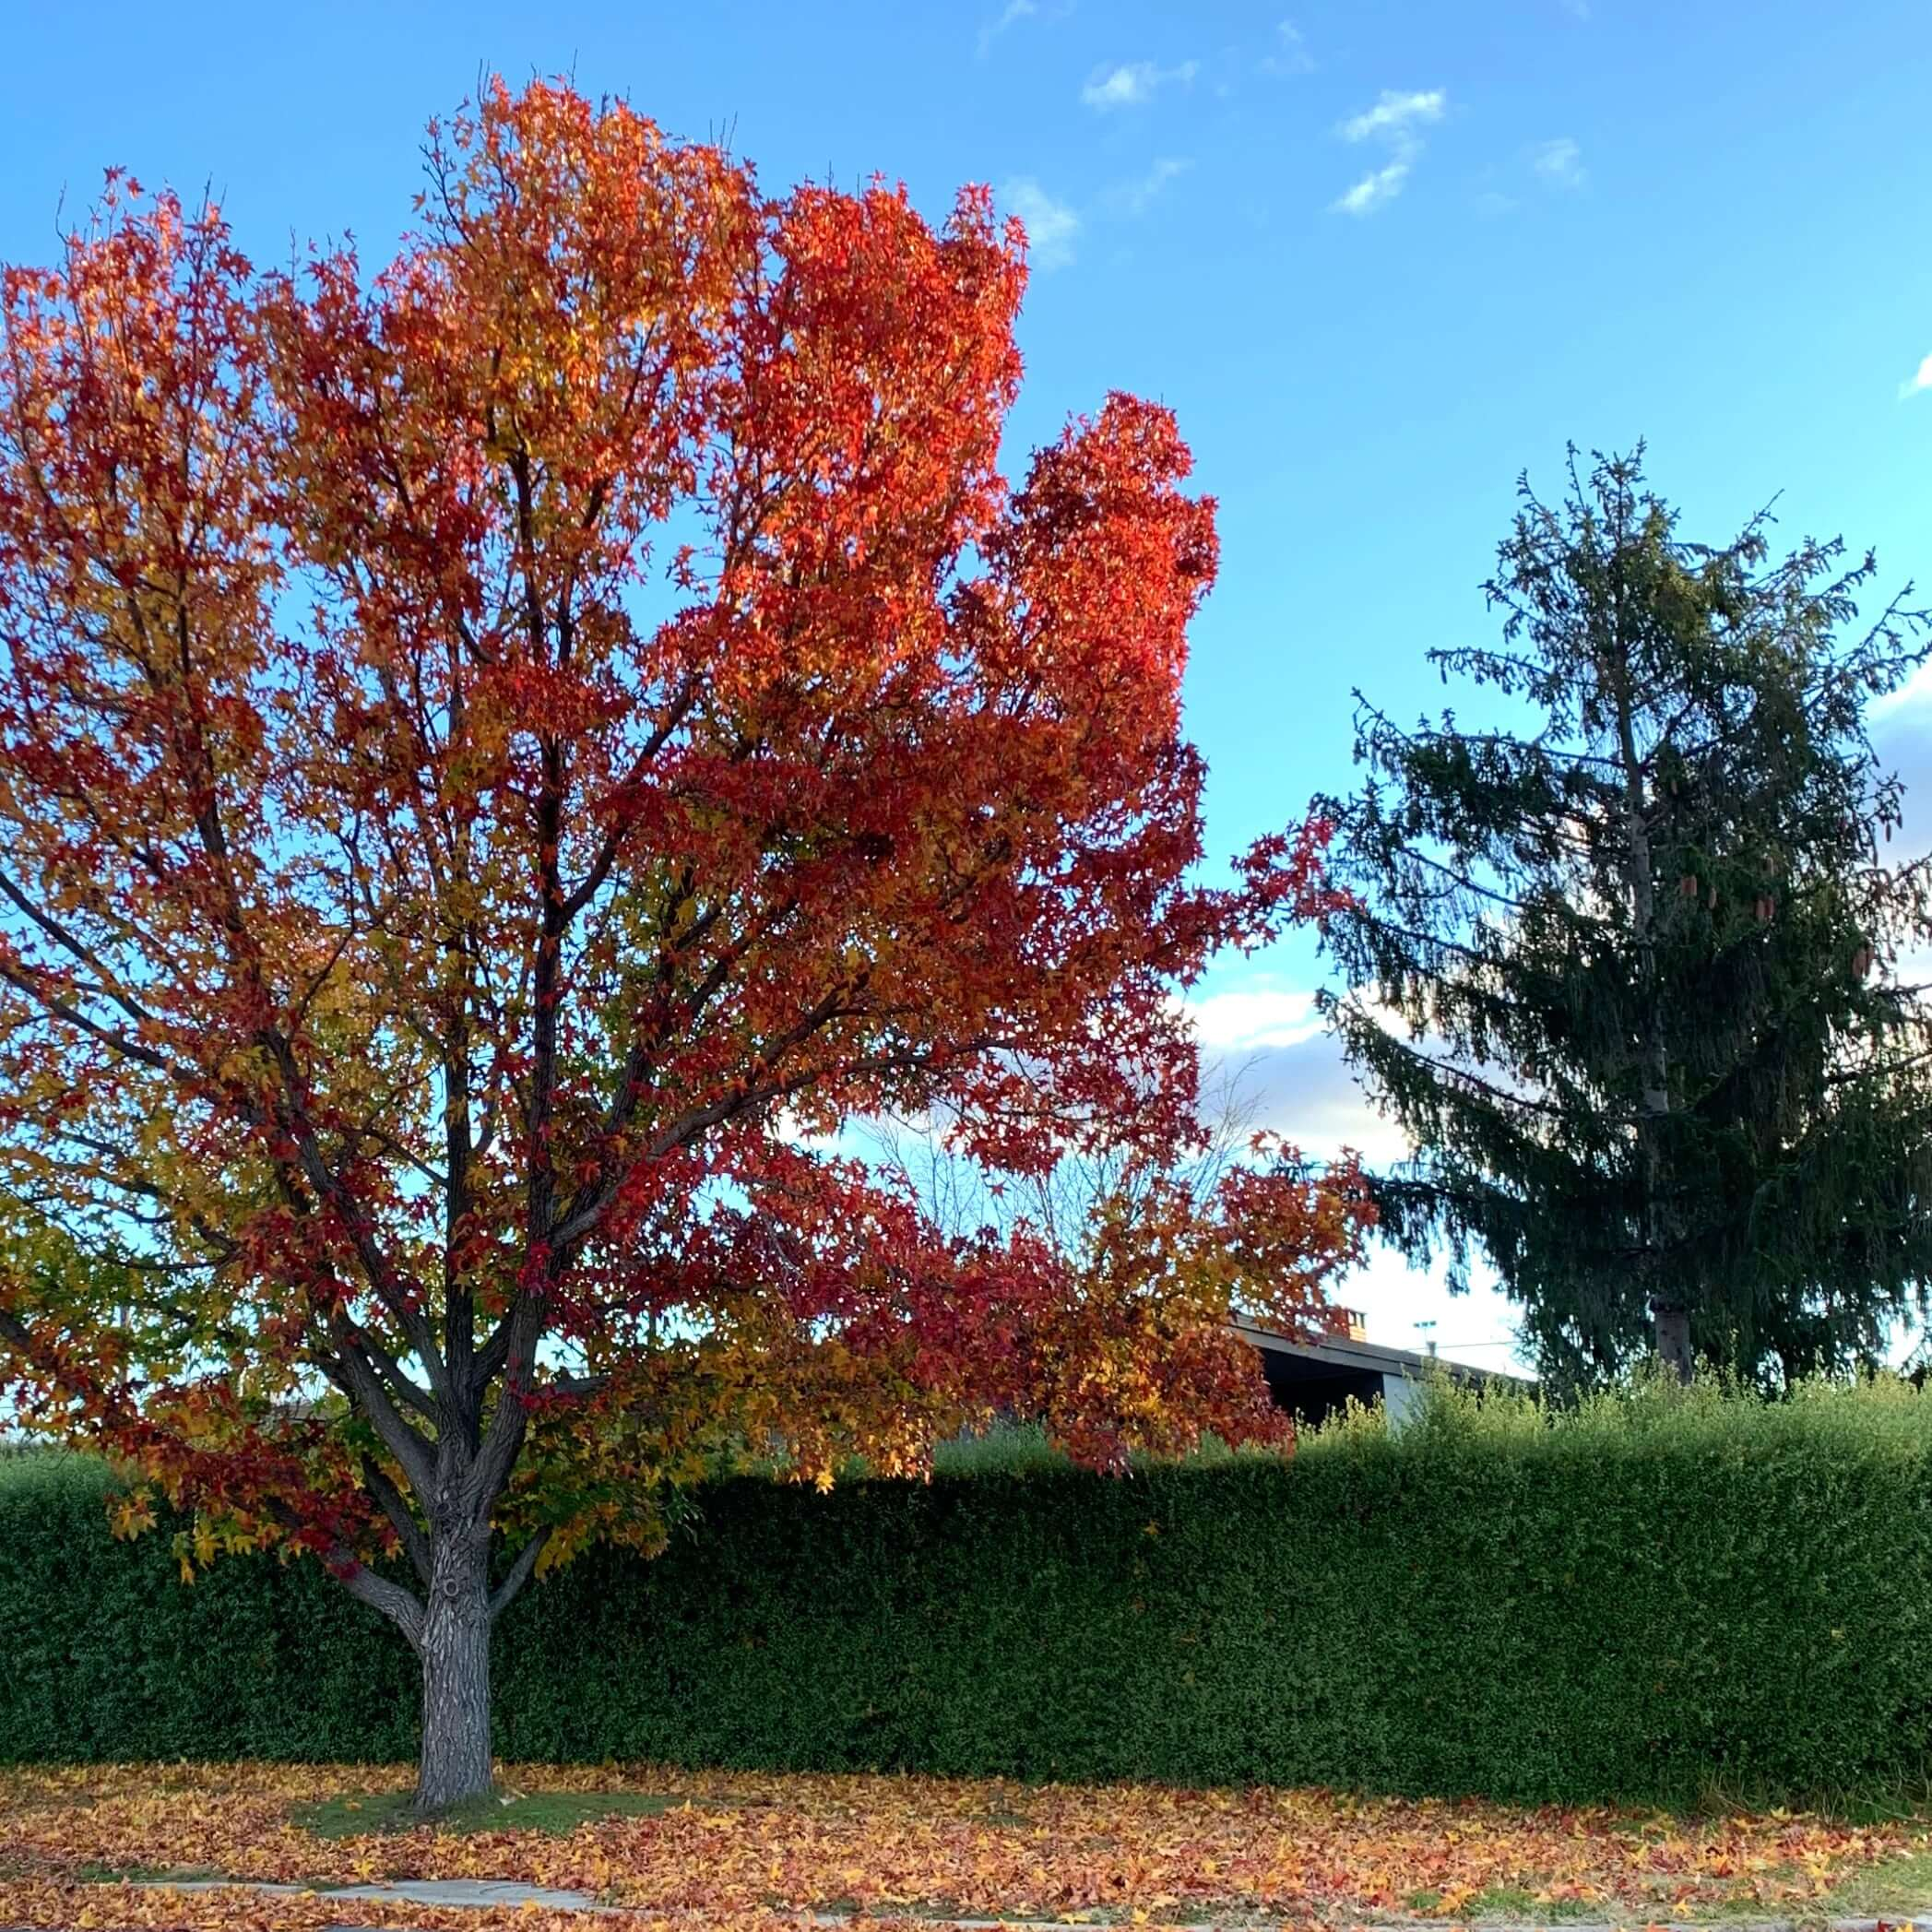 photo of an autum tree with a pool of brown and red leaves around it, taken in the second week of winter